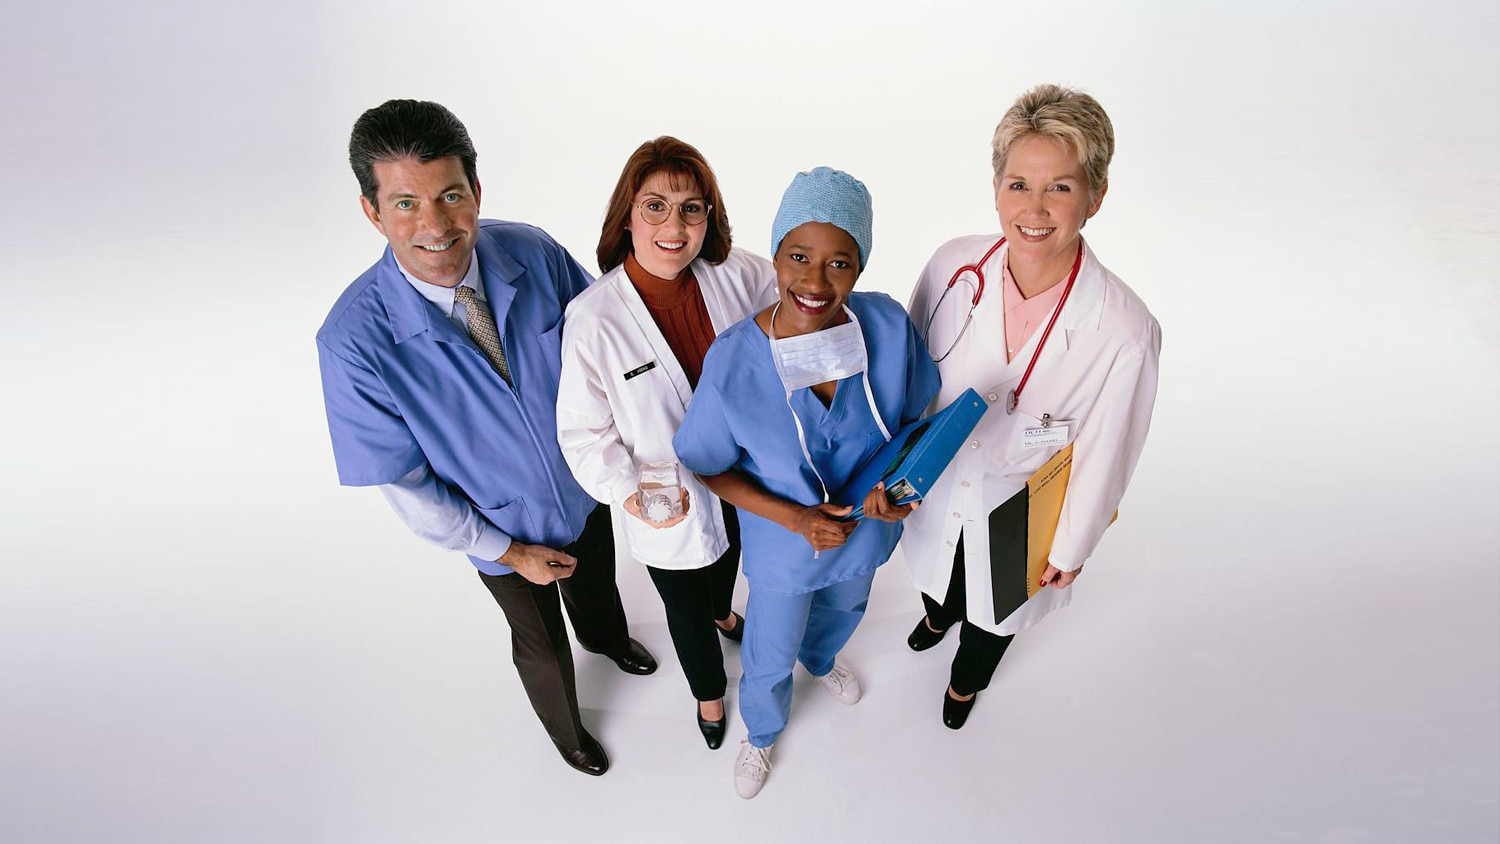 education-general-gehc_education_generic_nurse.jpg